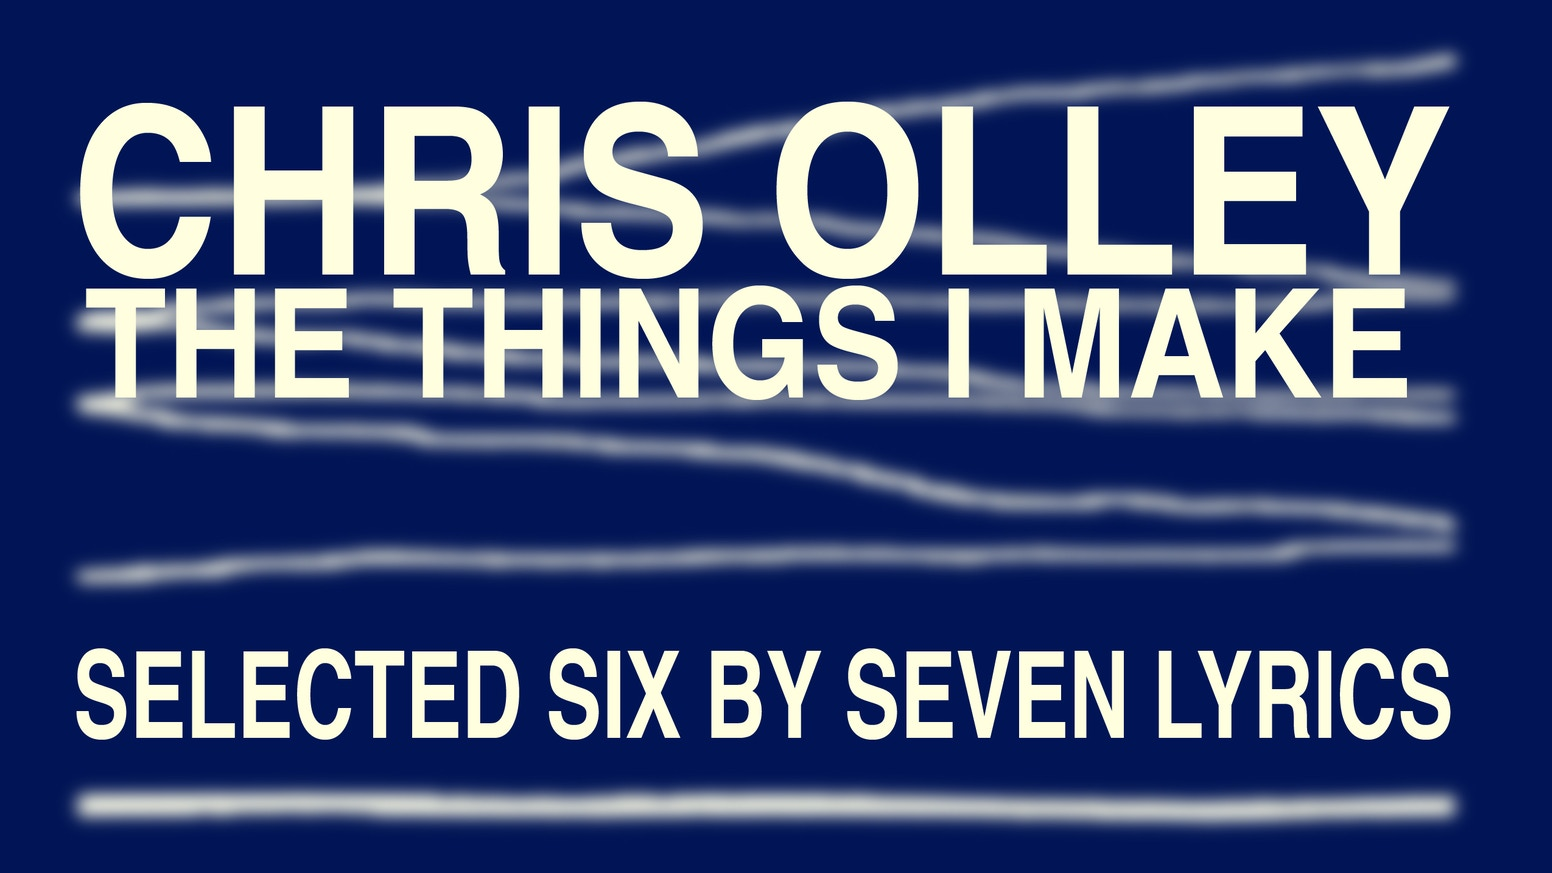 The Things I Make (selected Six By Seven Lyrics) by CHRIS